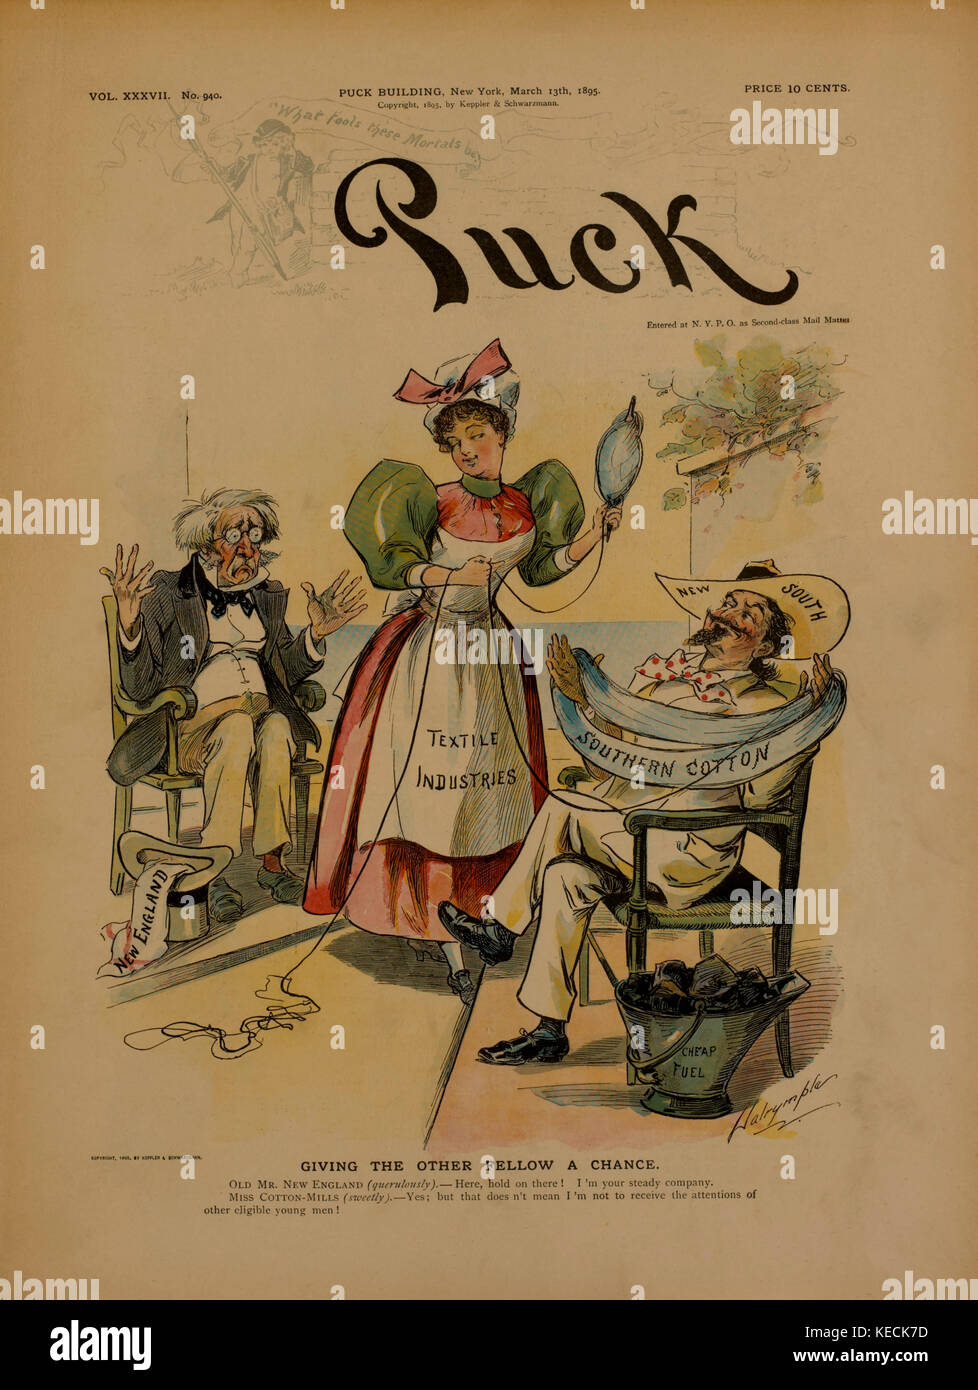 Political Cartoon, Giving the Other Fellow a Chance, Puck Magazine Cover, March, 13, 1885 - Stock Image